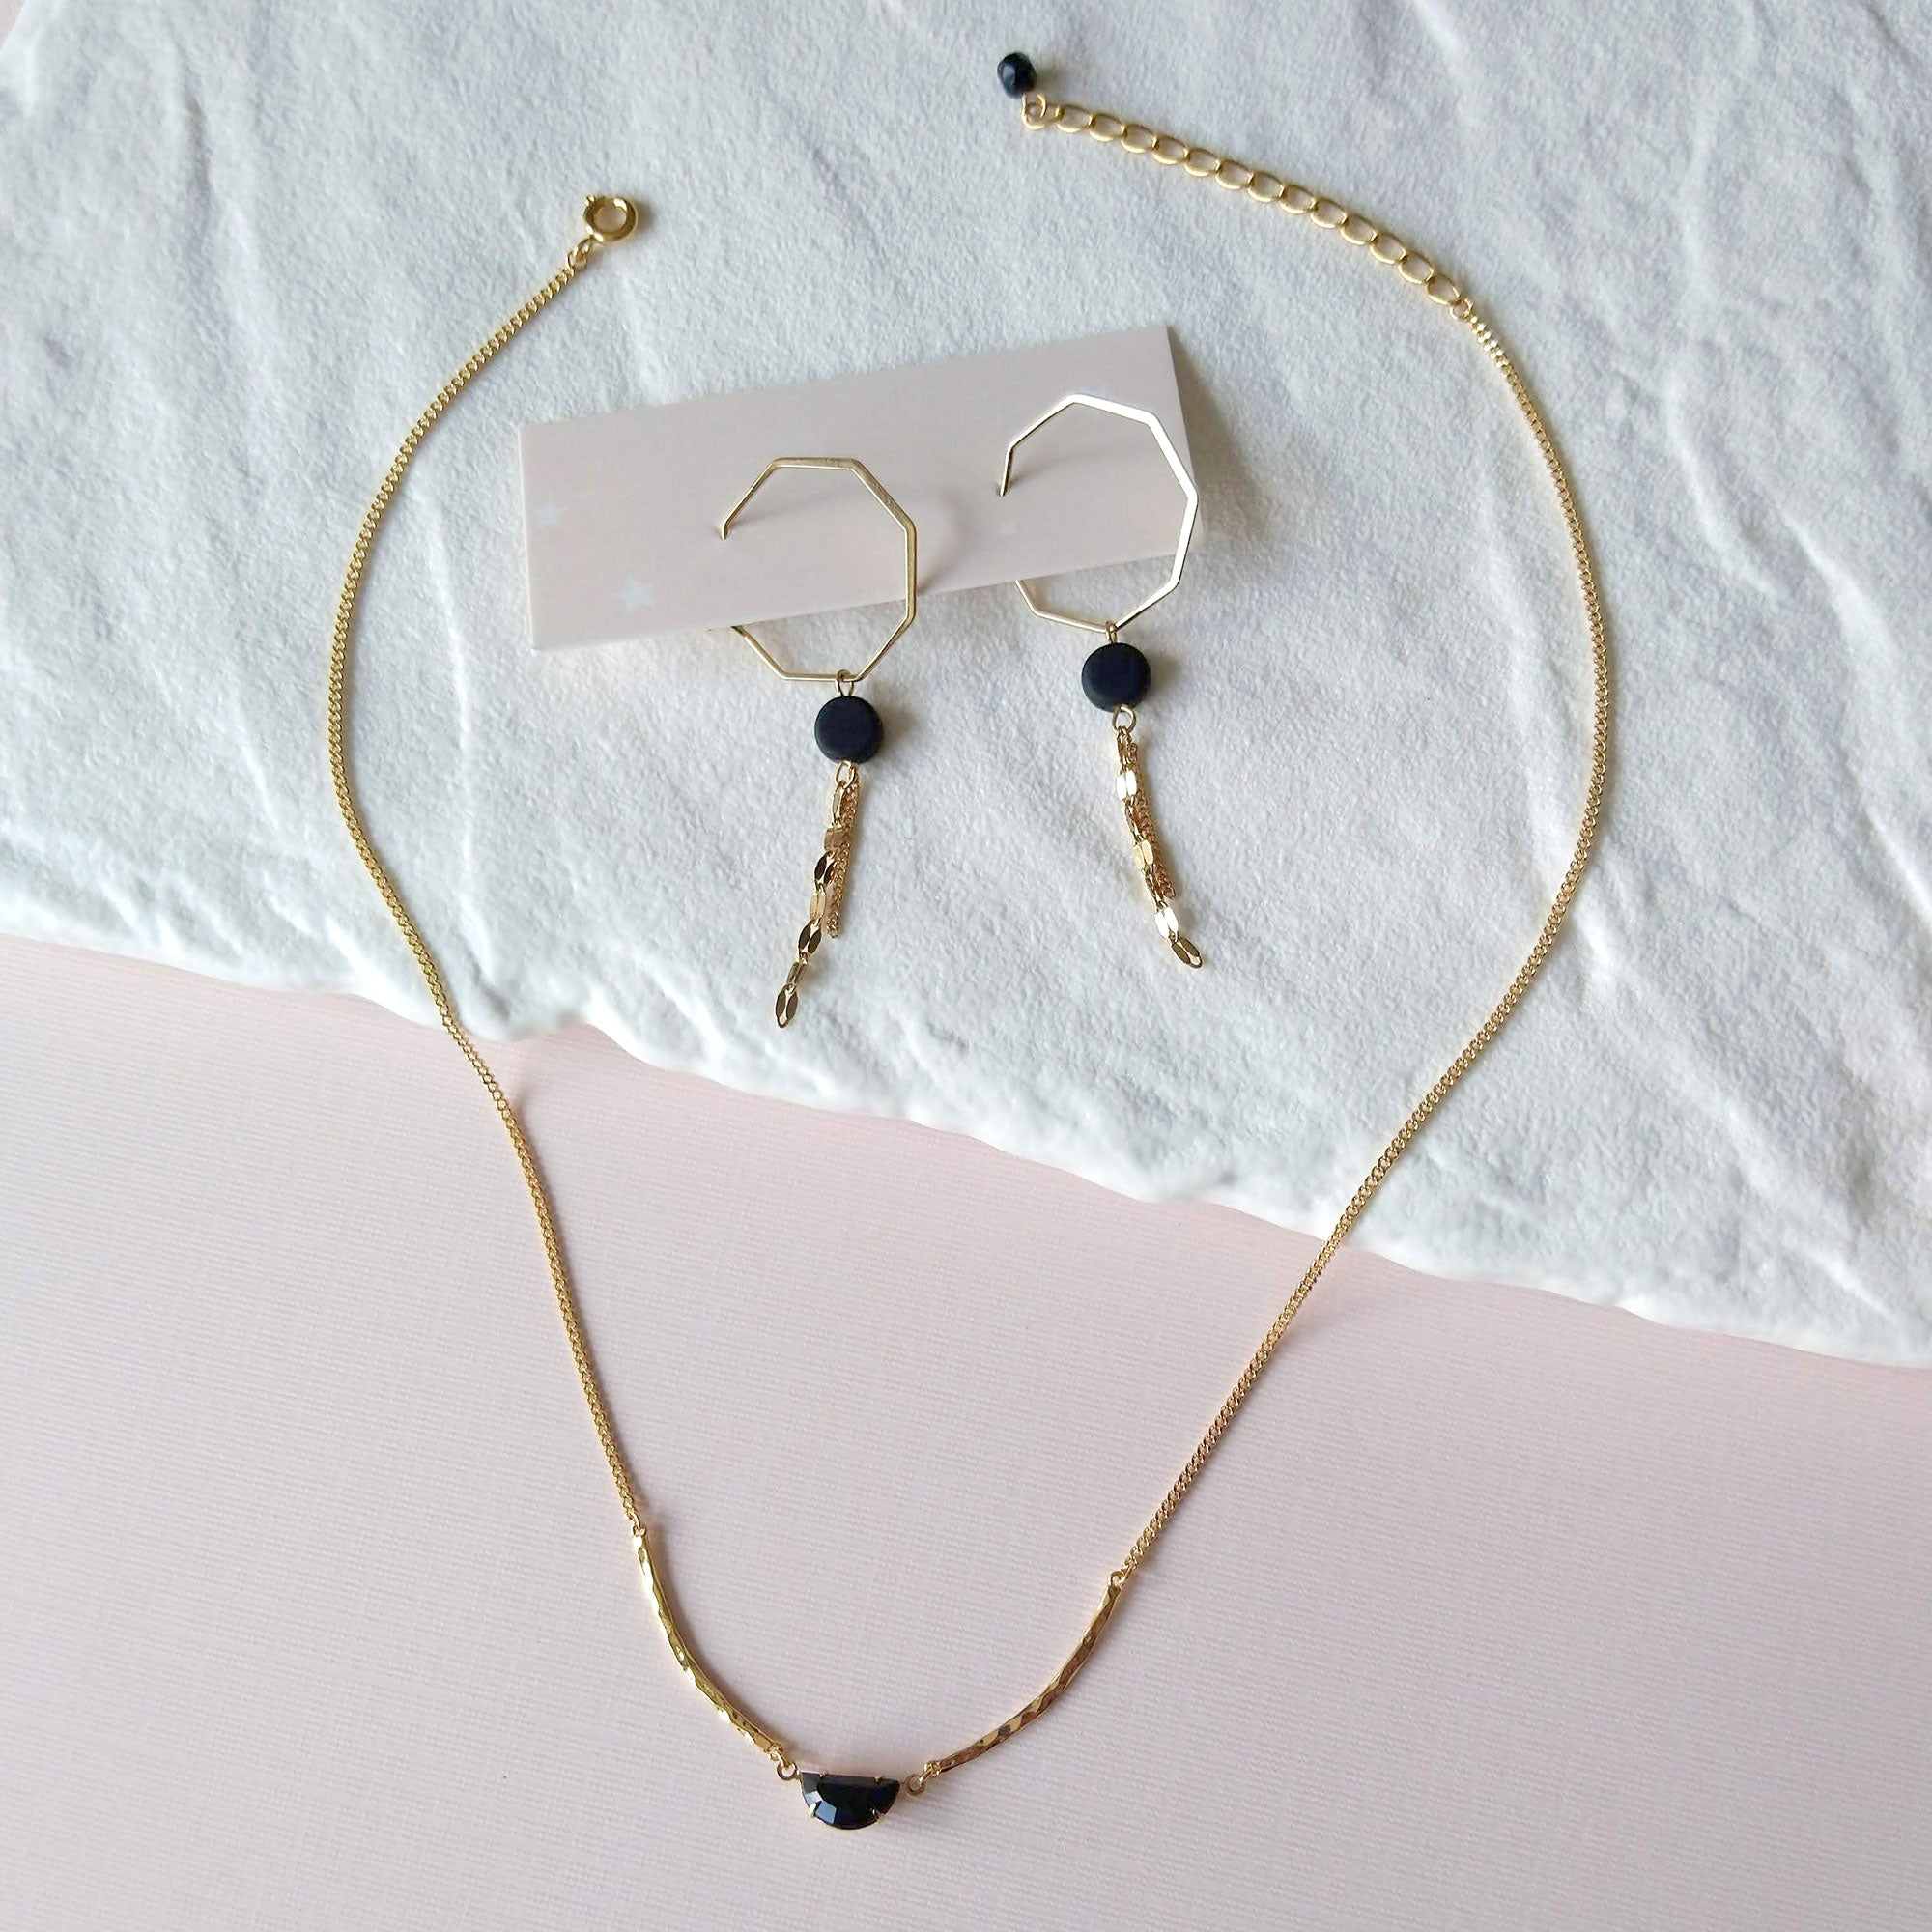 earrings and necklace duo